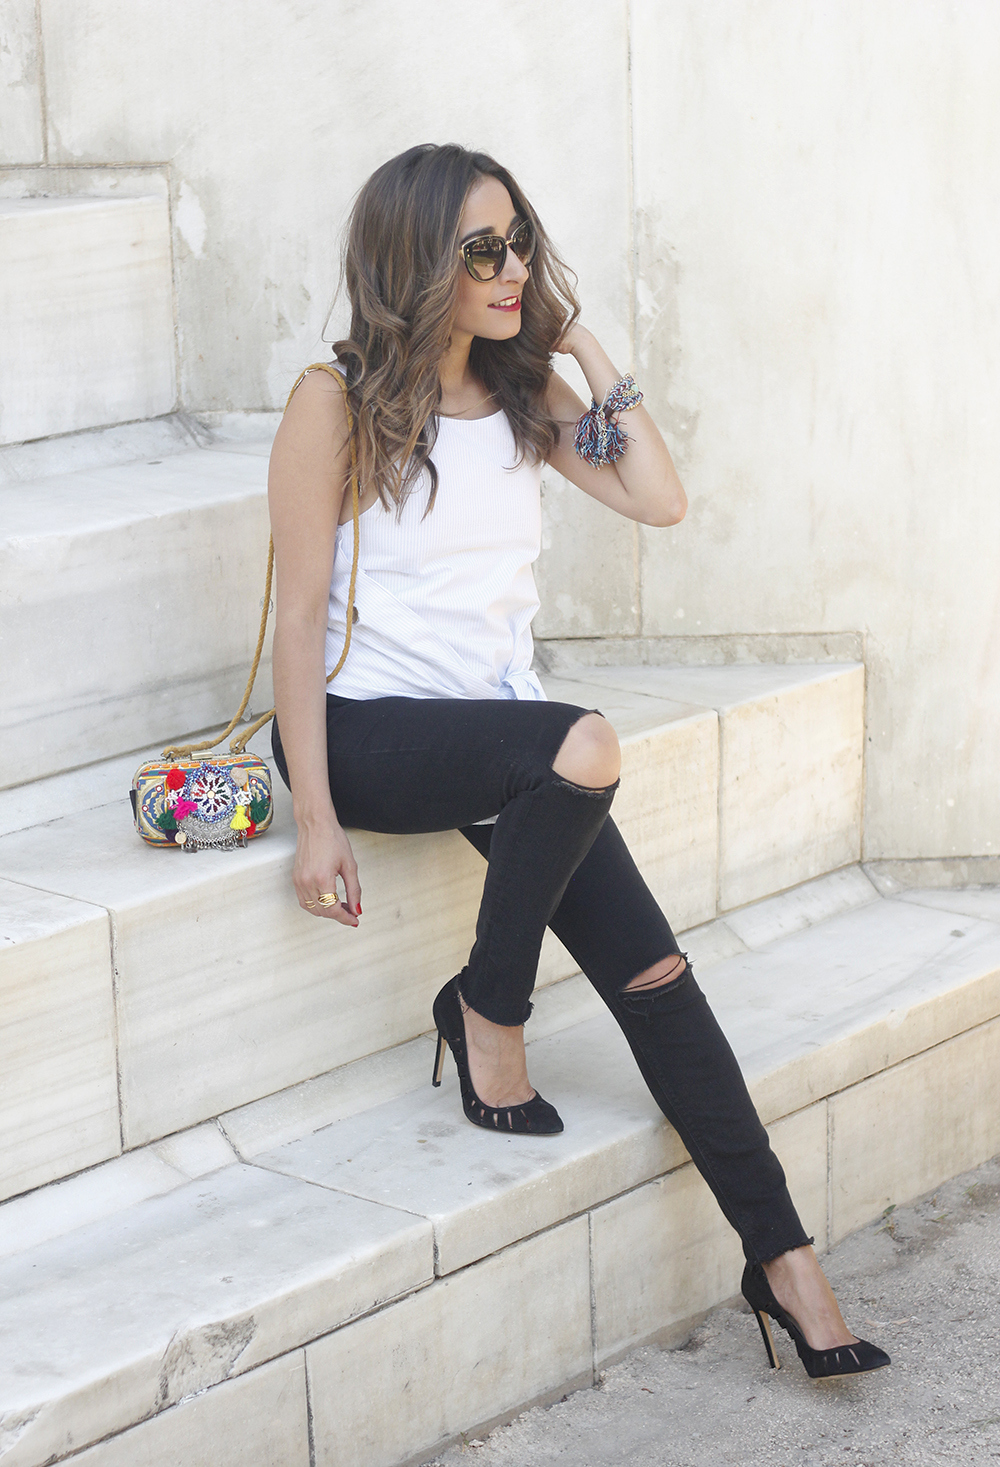 Knotted top black ripped jeans heels clutch sunnies summer outfit01